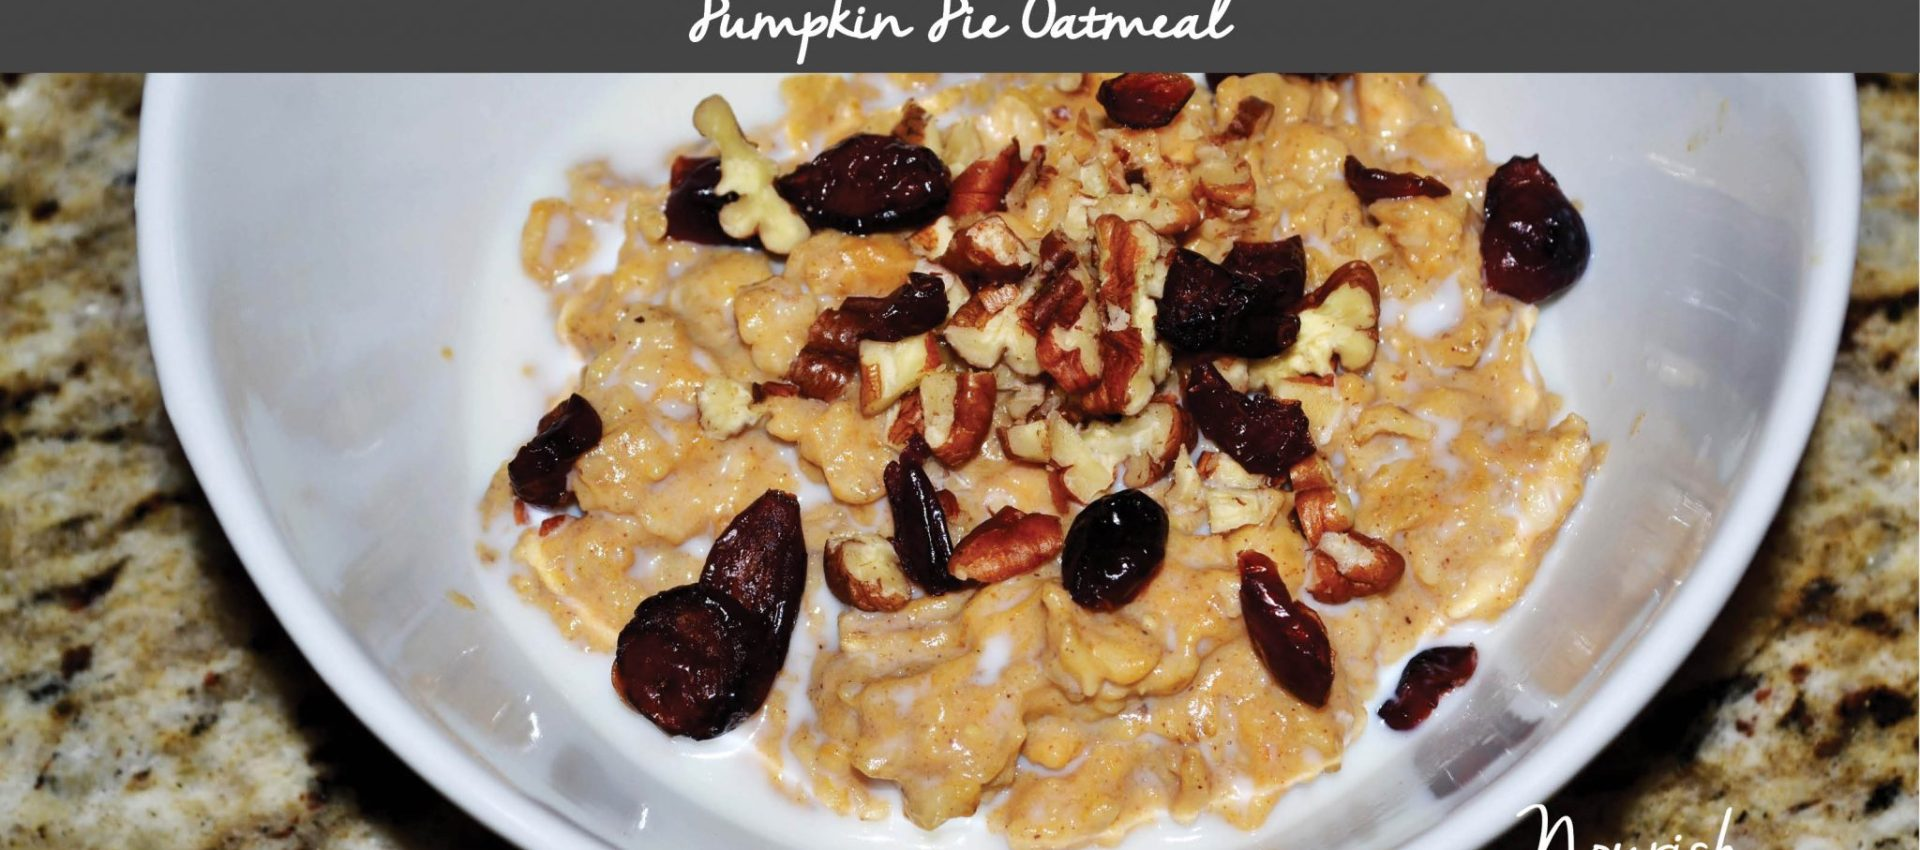 Pumpkin Pie Oatmeal with Pecans and Dried Cranberries- Recipe